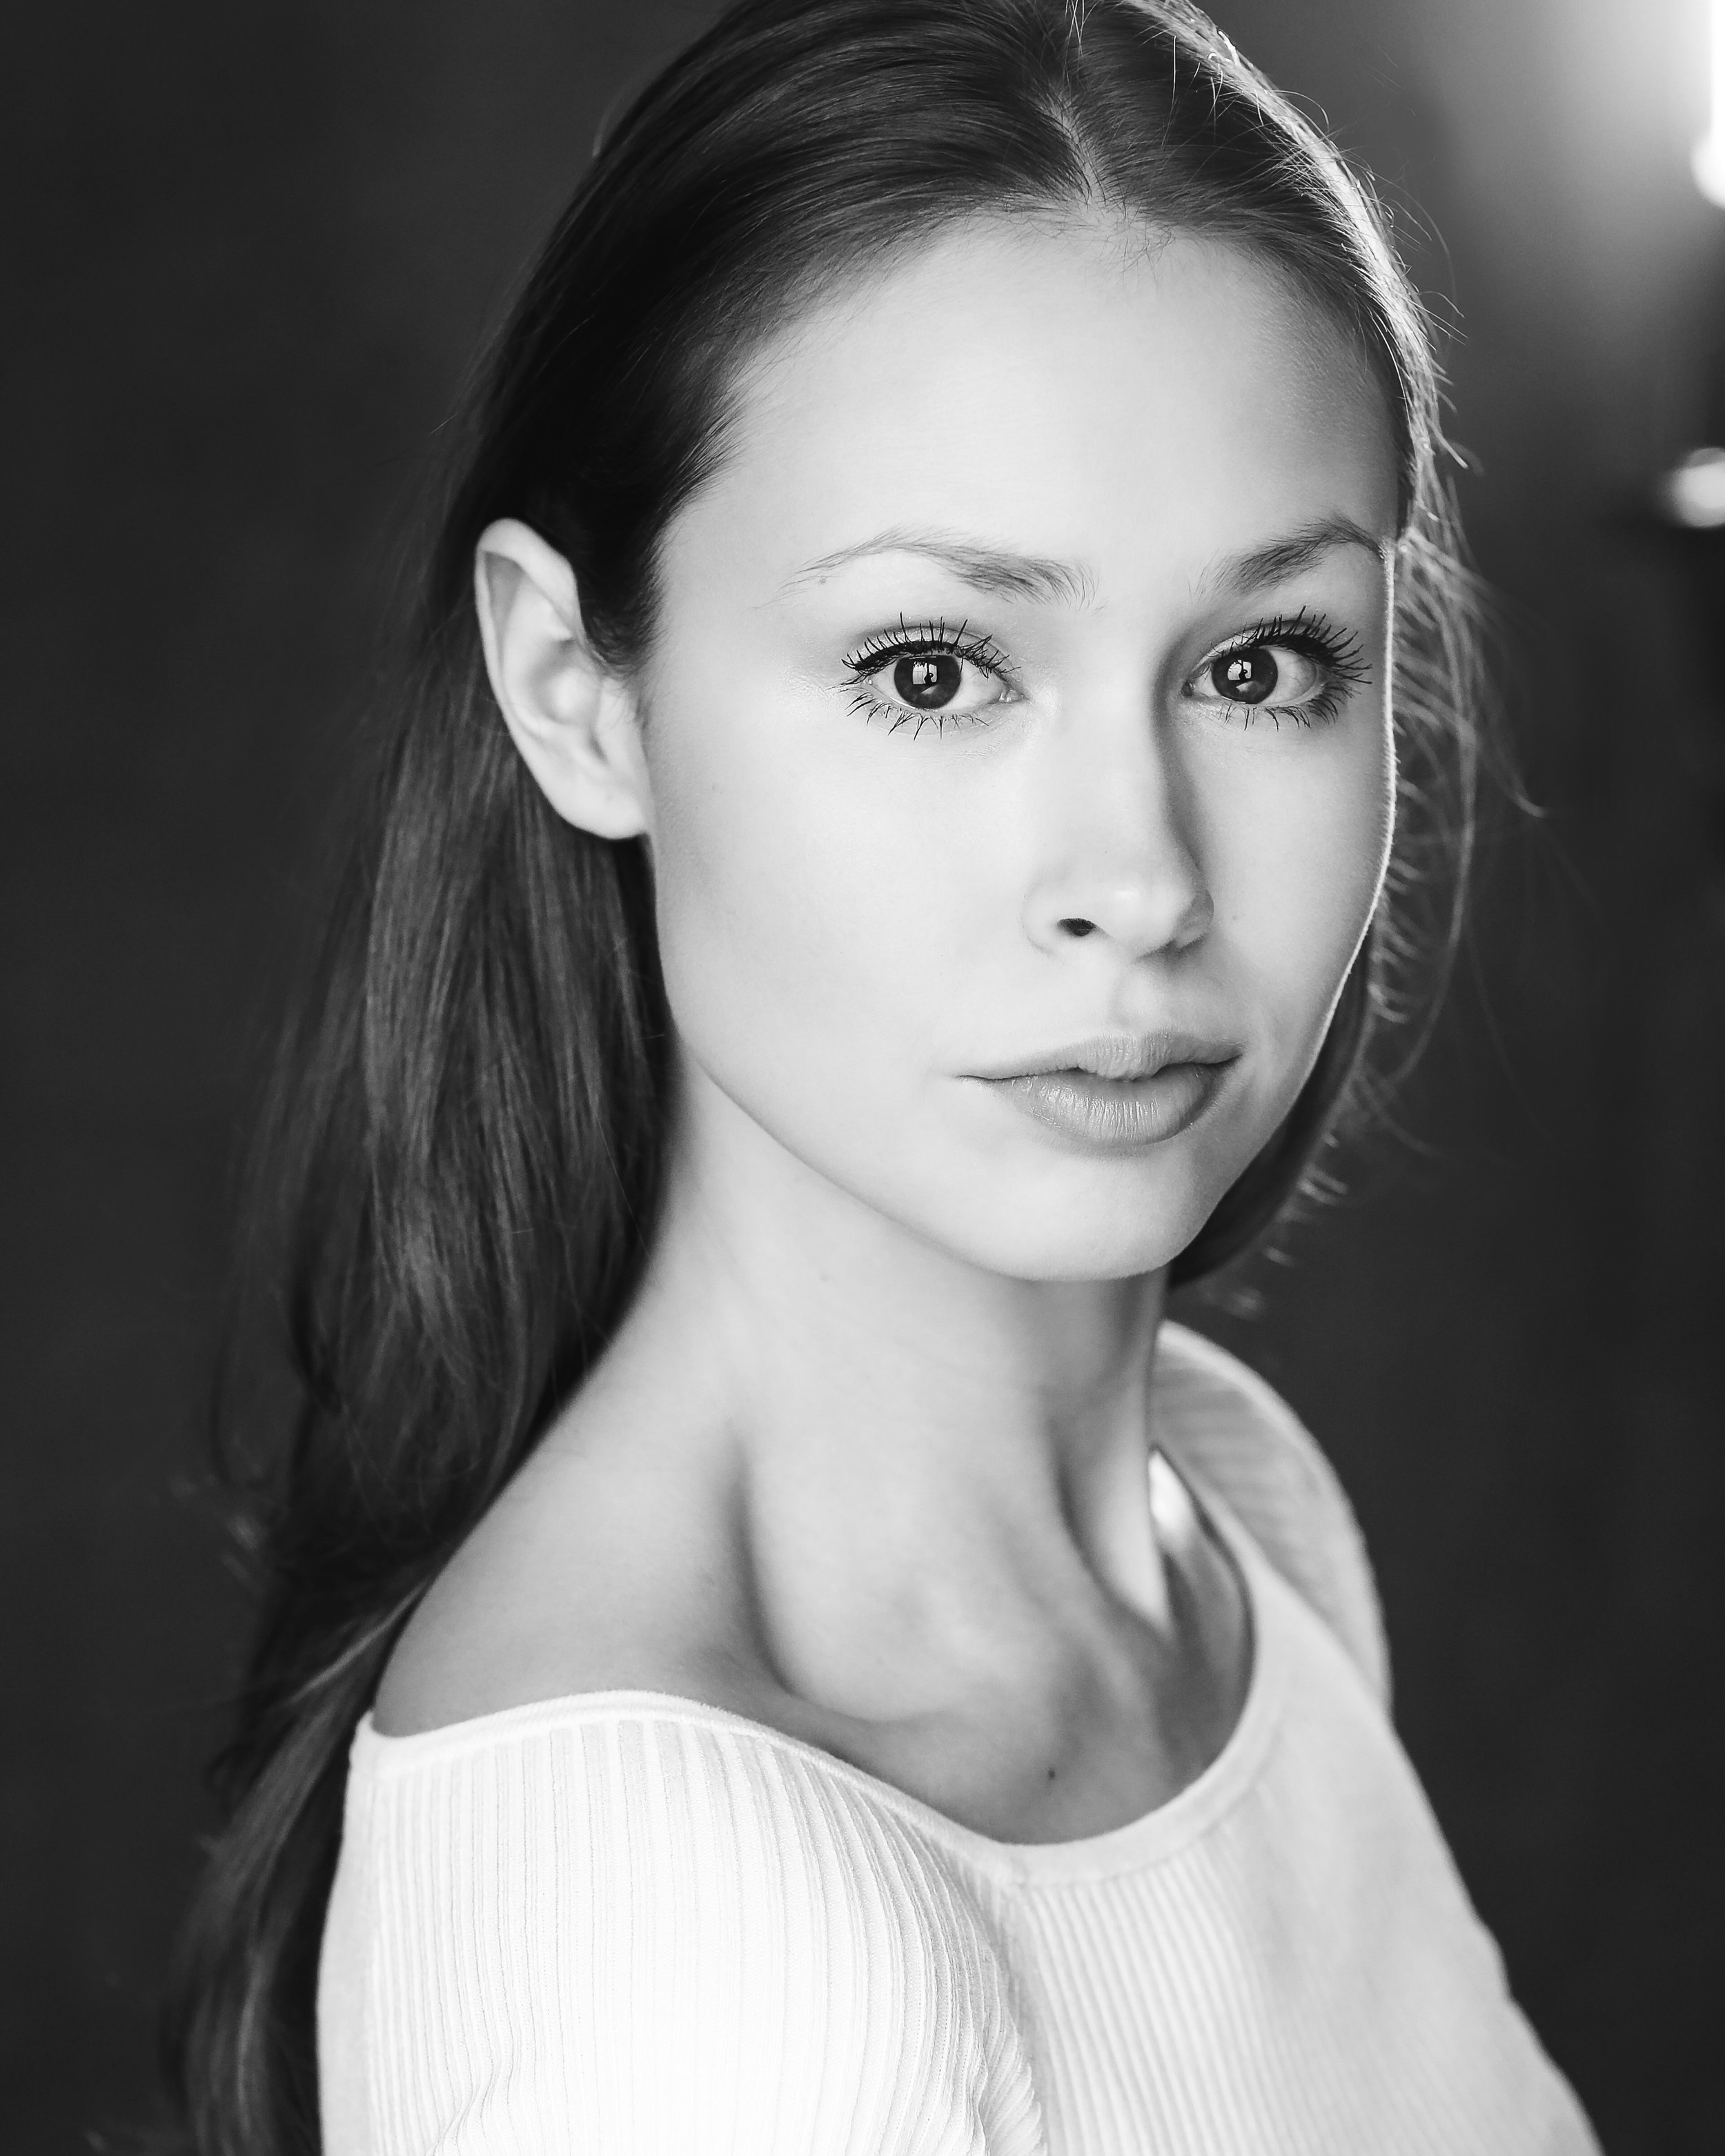 Lily Smith  Lily Smith graduated from Guildford School of Acting in 2015 from the BA Hons Acting course. Lily has recently appeared in feature film  'Our Little Haven'  and is currently filming as the lead in WWII feature film  'Sarah's War' , both scheduled for release in 2017.